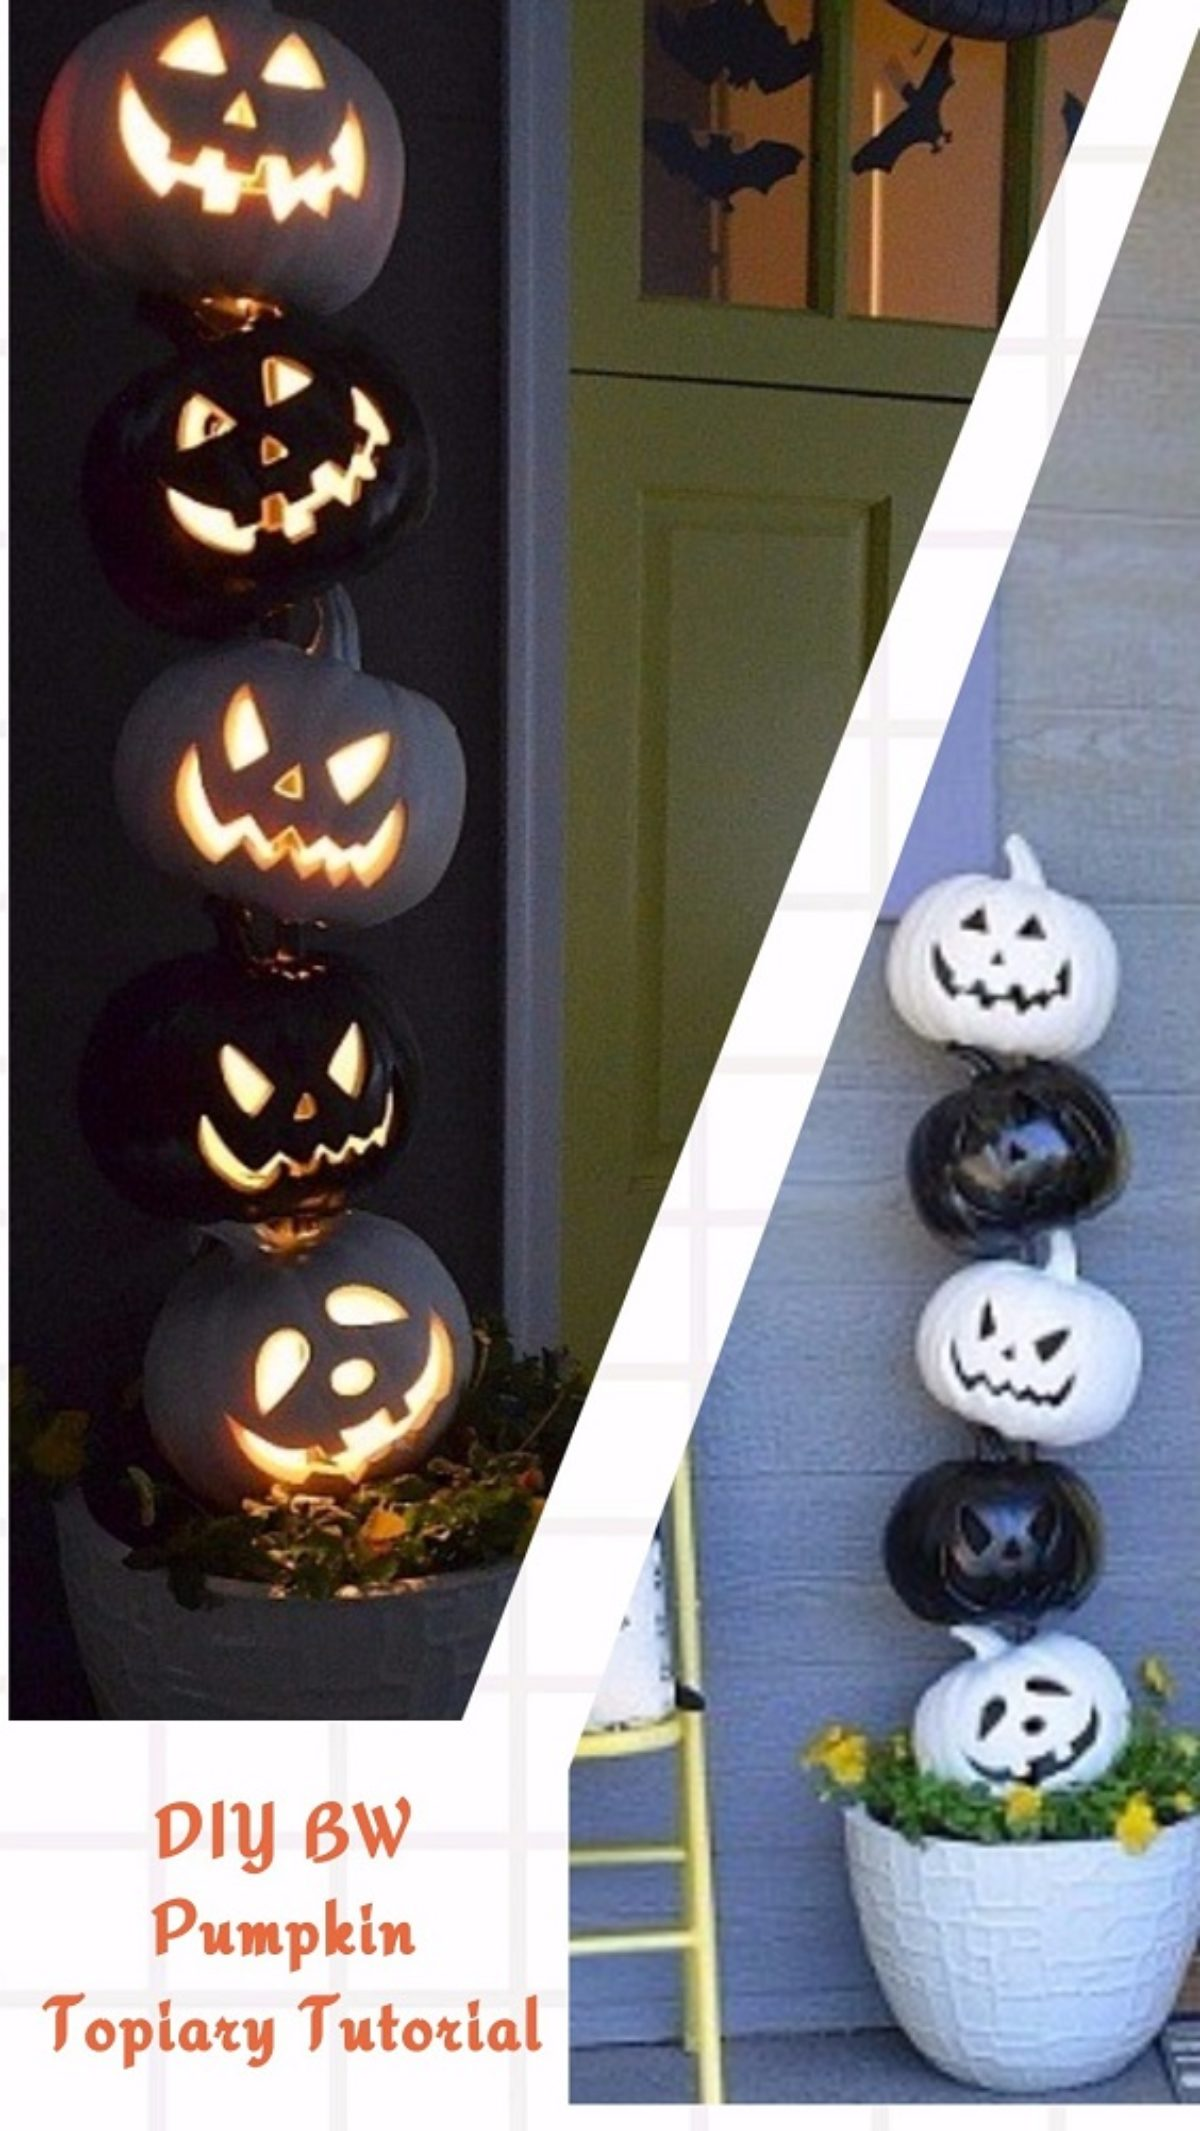 Easy And Cheap Diy Halloween Project Diy Bw Pumpkin Topiary Tutorial